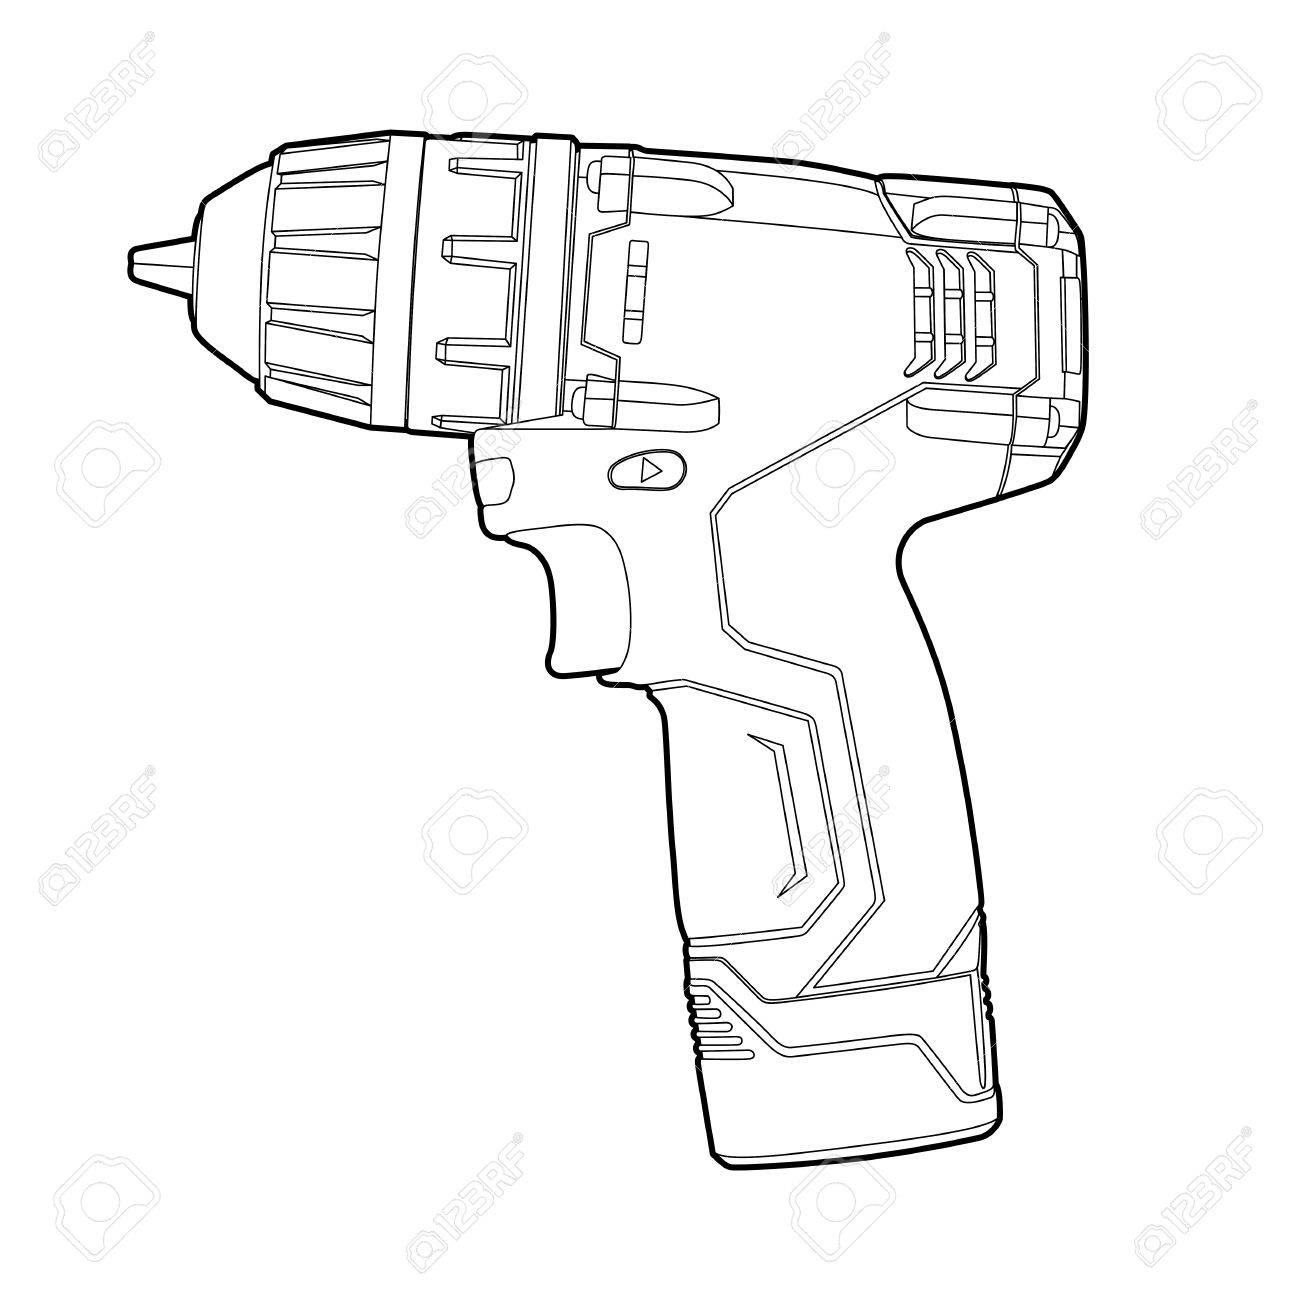 cordless drill drawing. black outline cordless drill on white stock vector - 10697001 drawing l